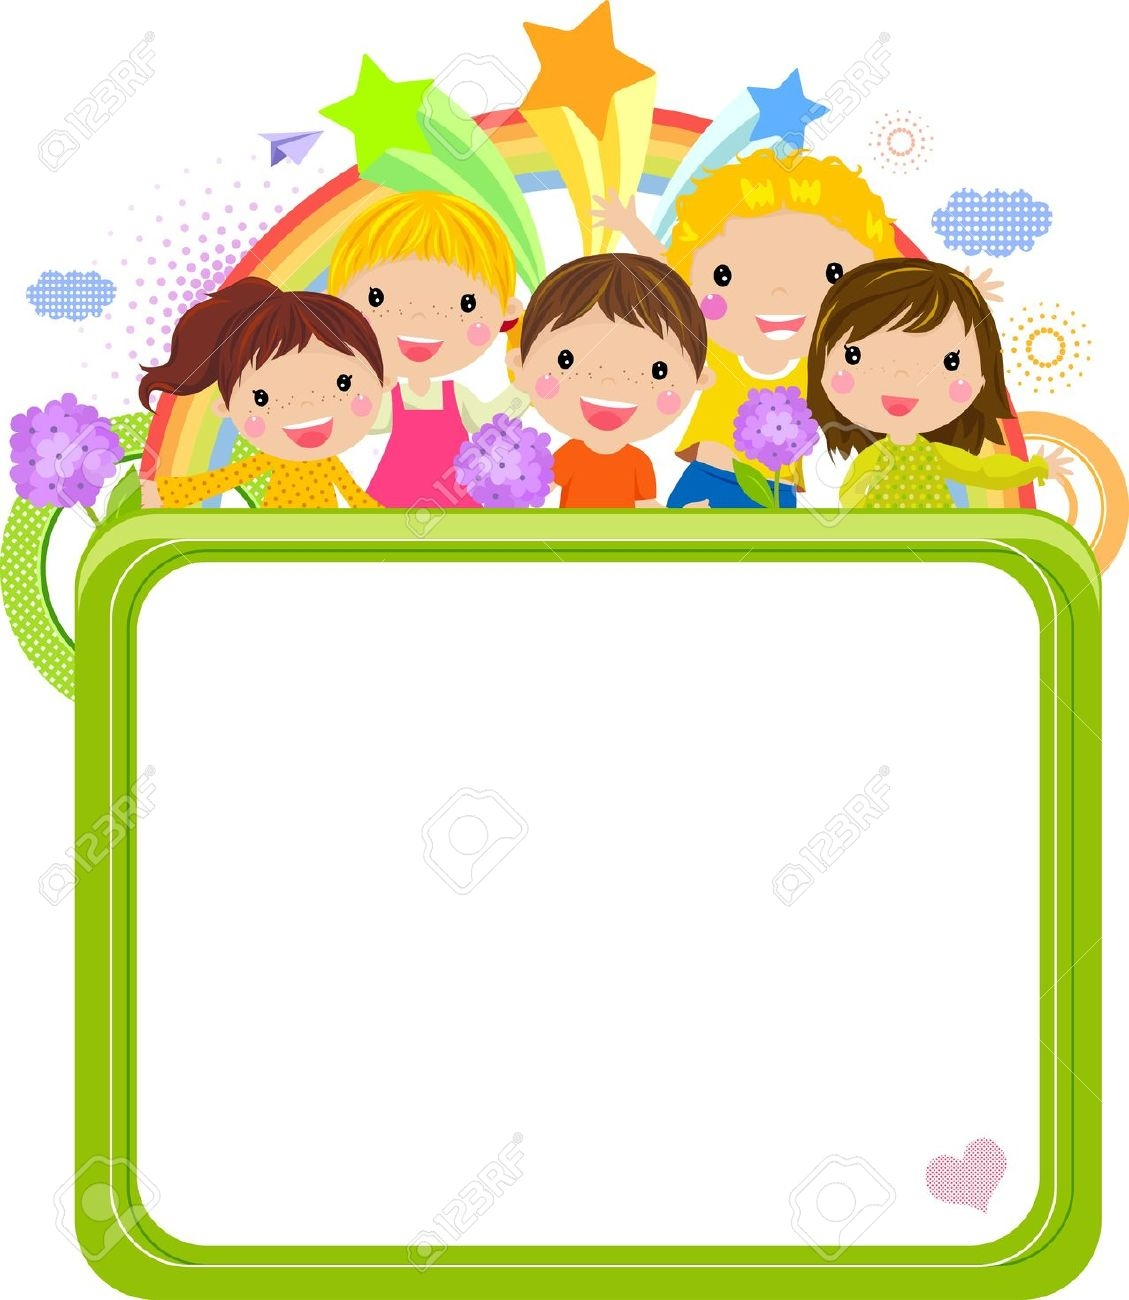 Cartoon Character Border Design : Cute school clipart horizontal border clipground